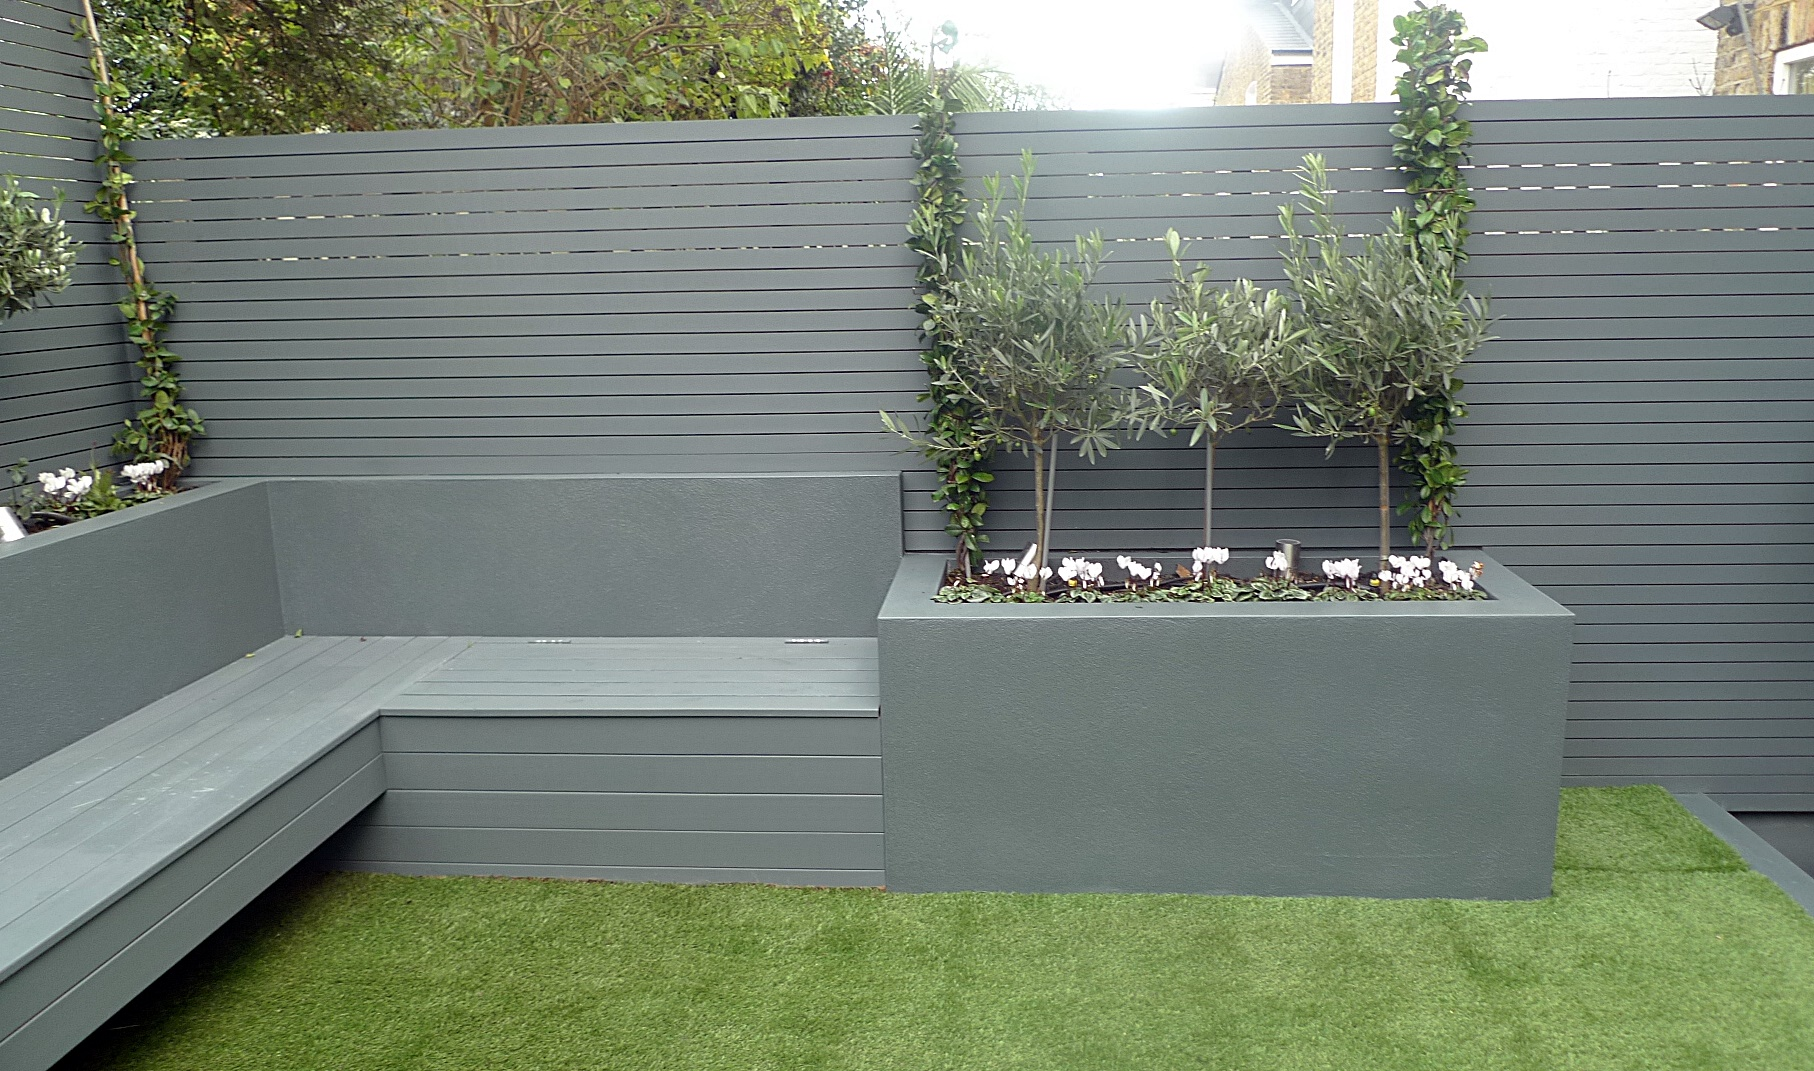 Grass london garden blog Garden wall color ideas